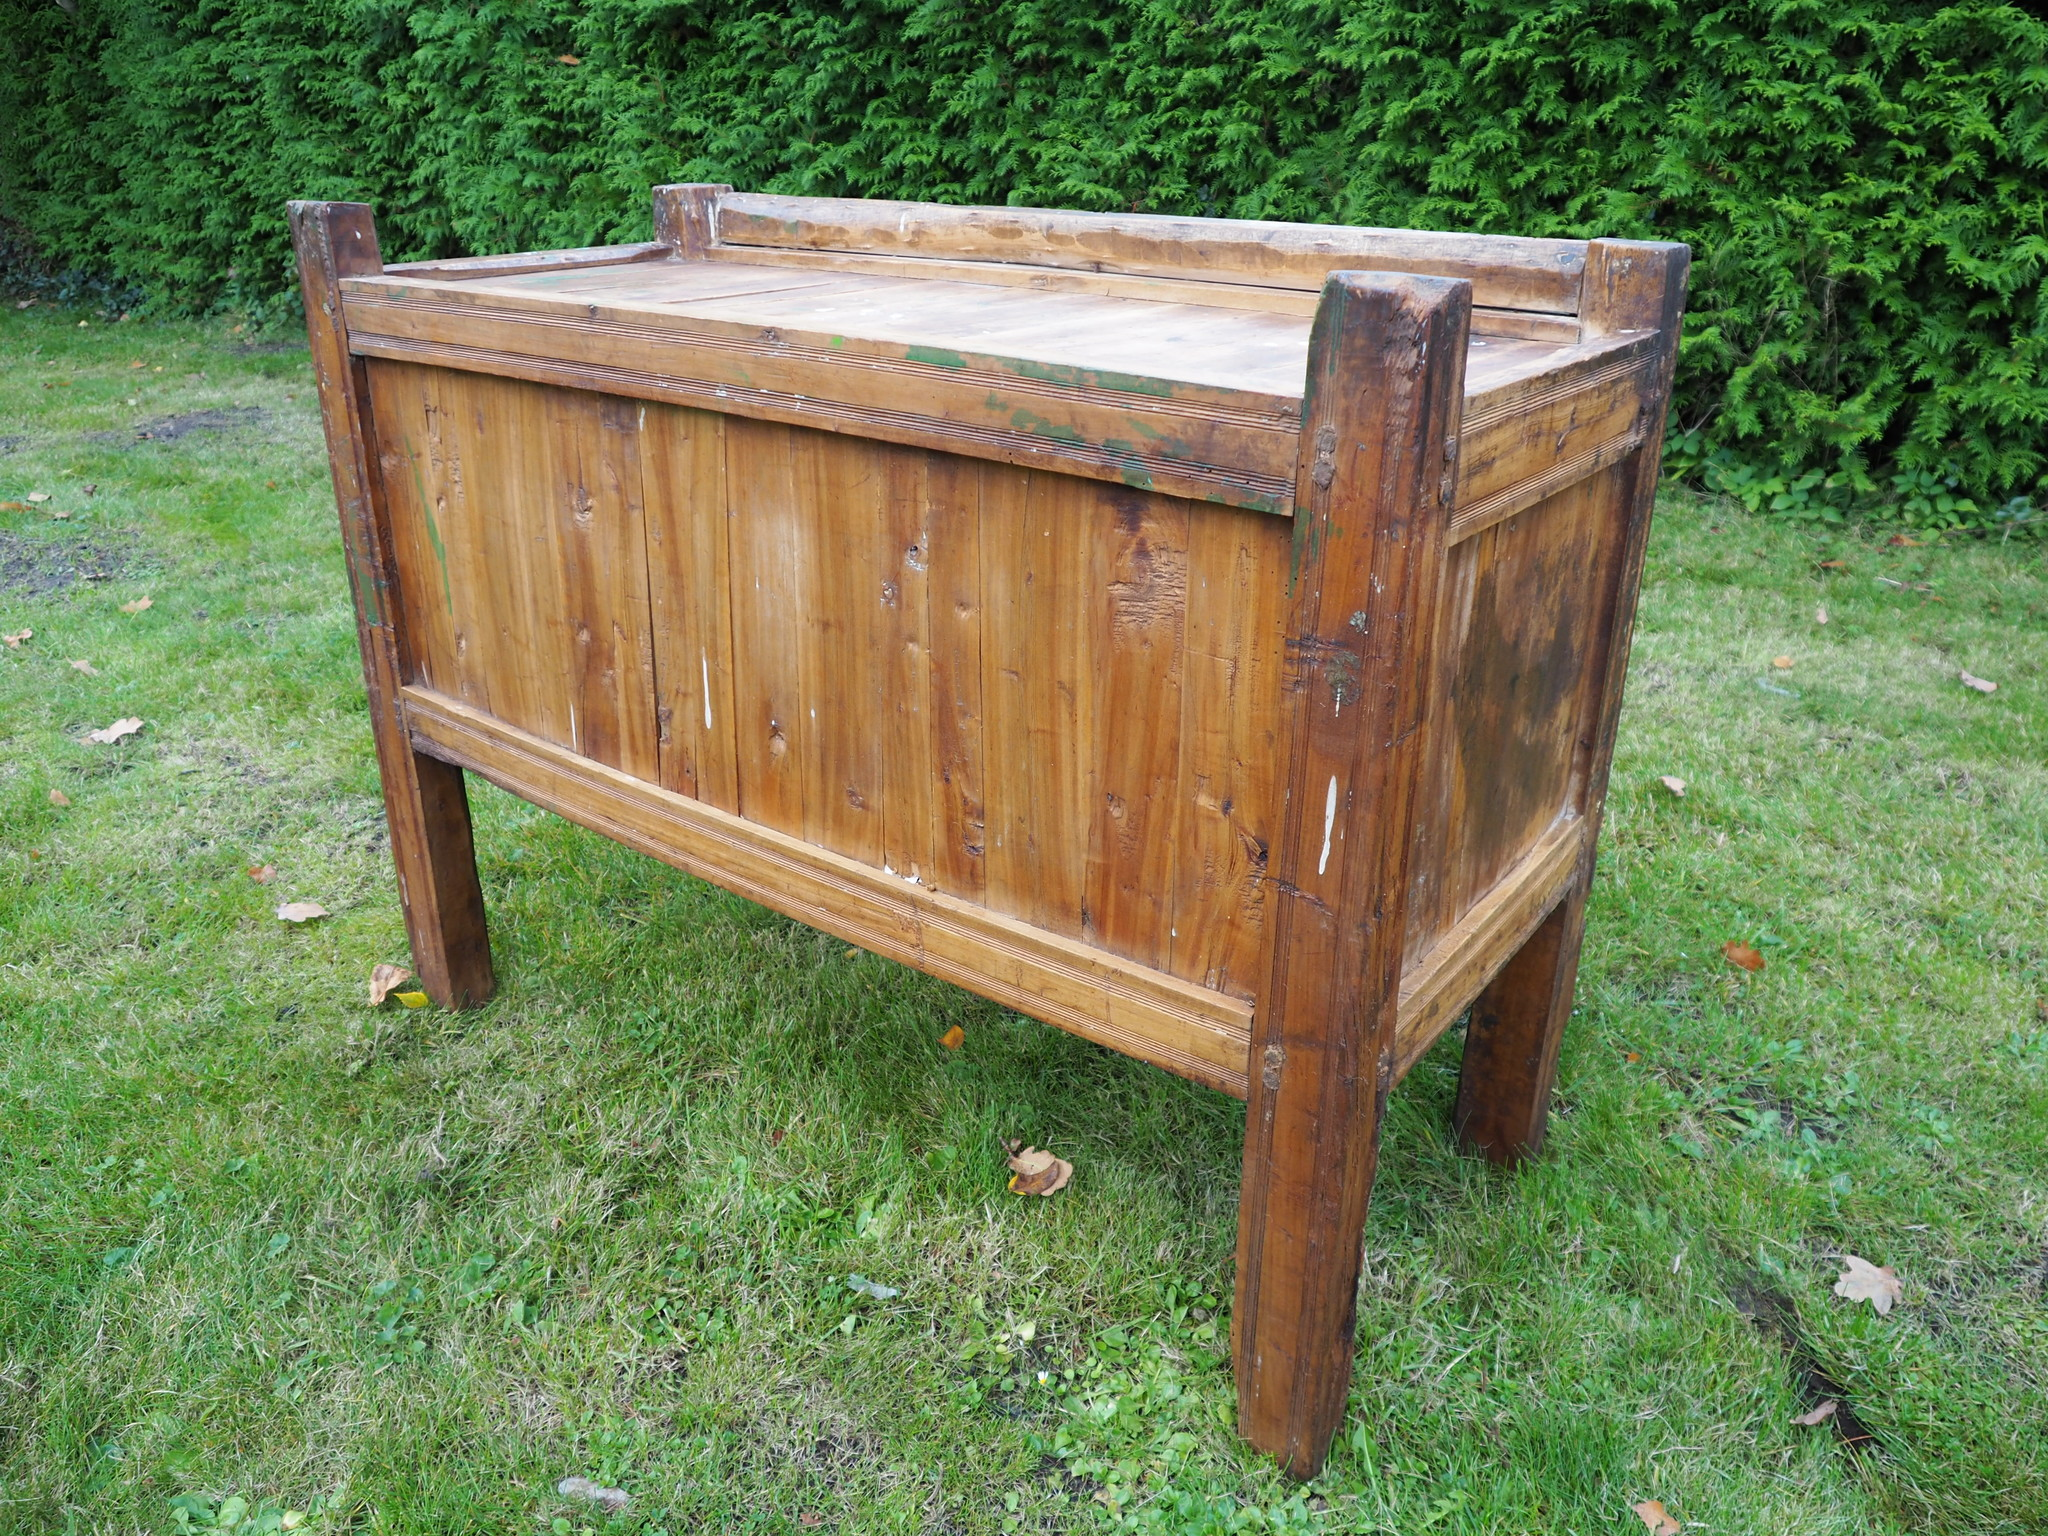 antique 19th century  wooden yurt treasure Dowry Chest from Afghanistan turkmenistan No:BAS1